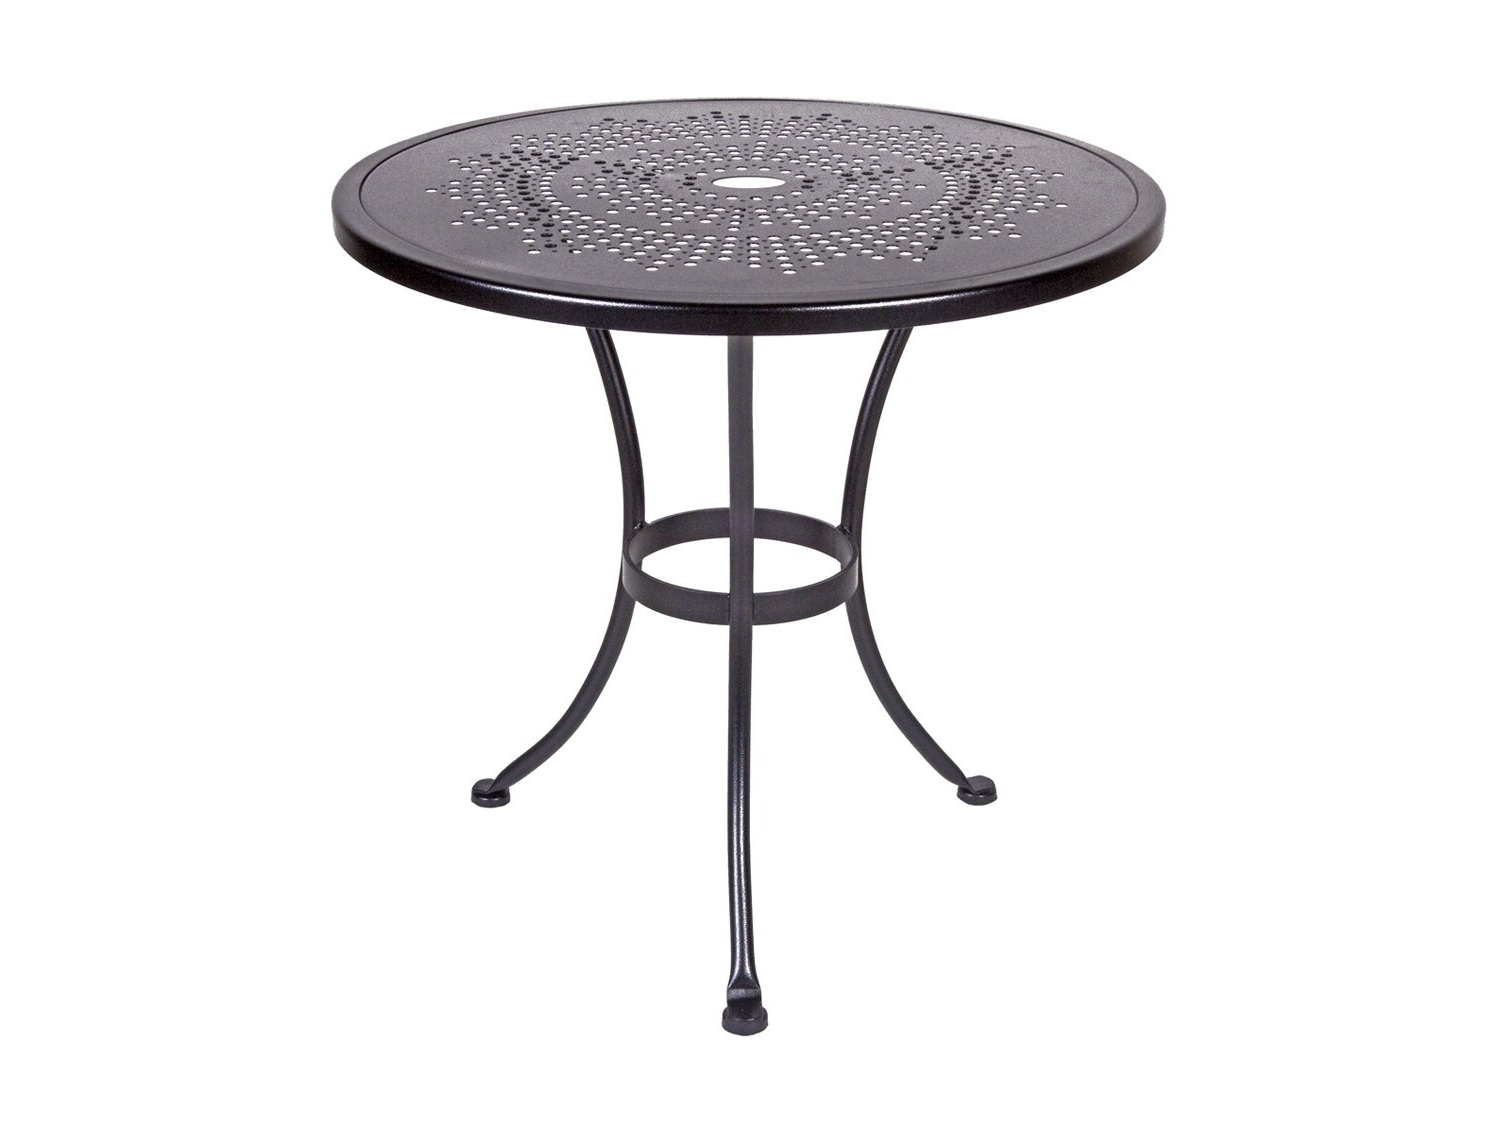 Patio Tables With Umbrella Hole Pertaining To Newest Stylish Patio Table Umbrella — Wilson Home Ideas : Making Patio (View 9 of 20)